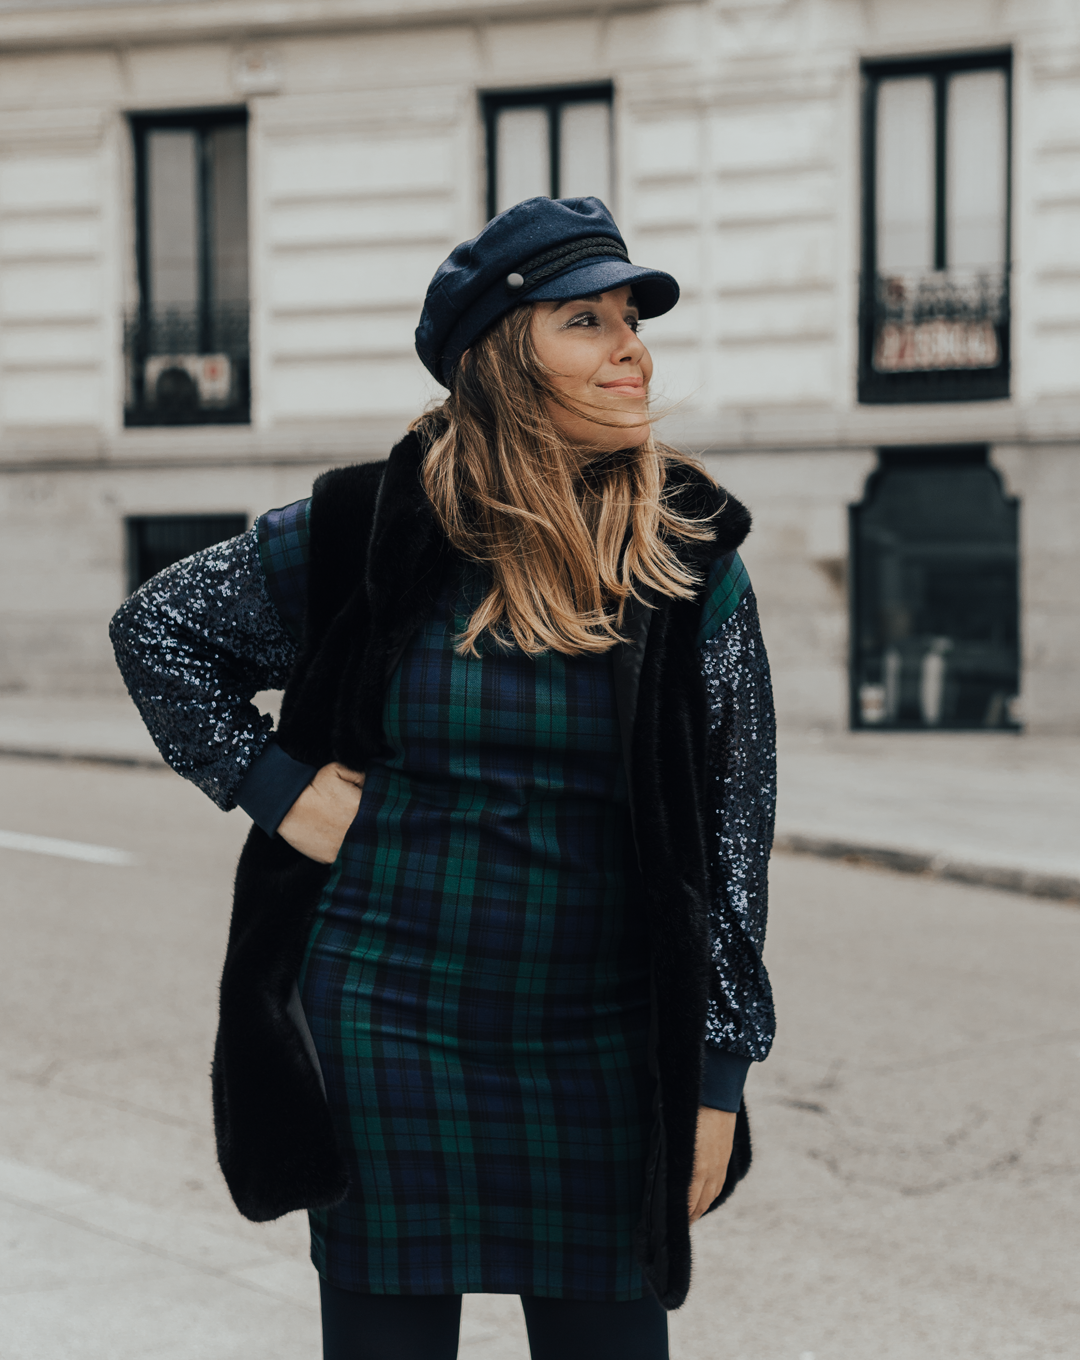 tartan dress outfit